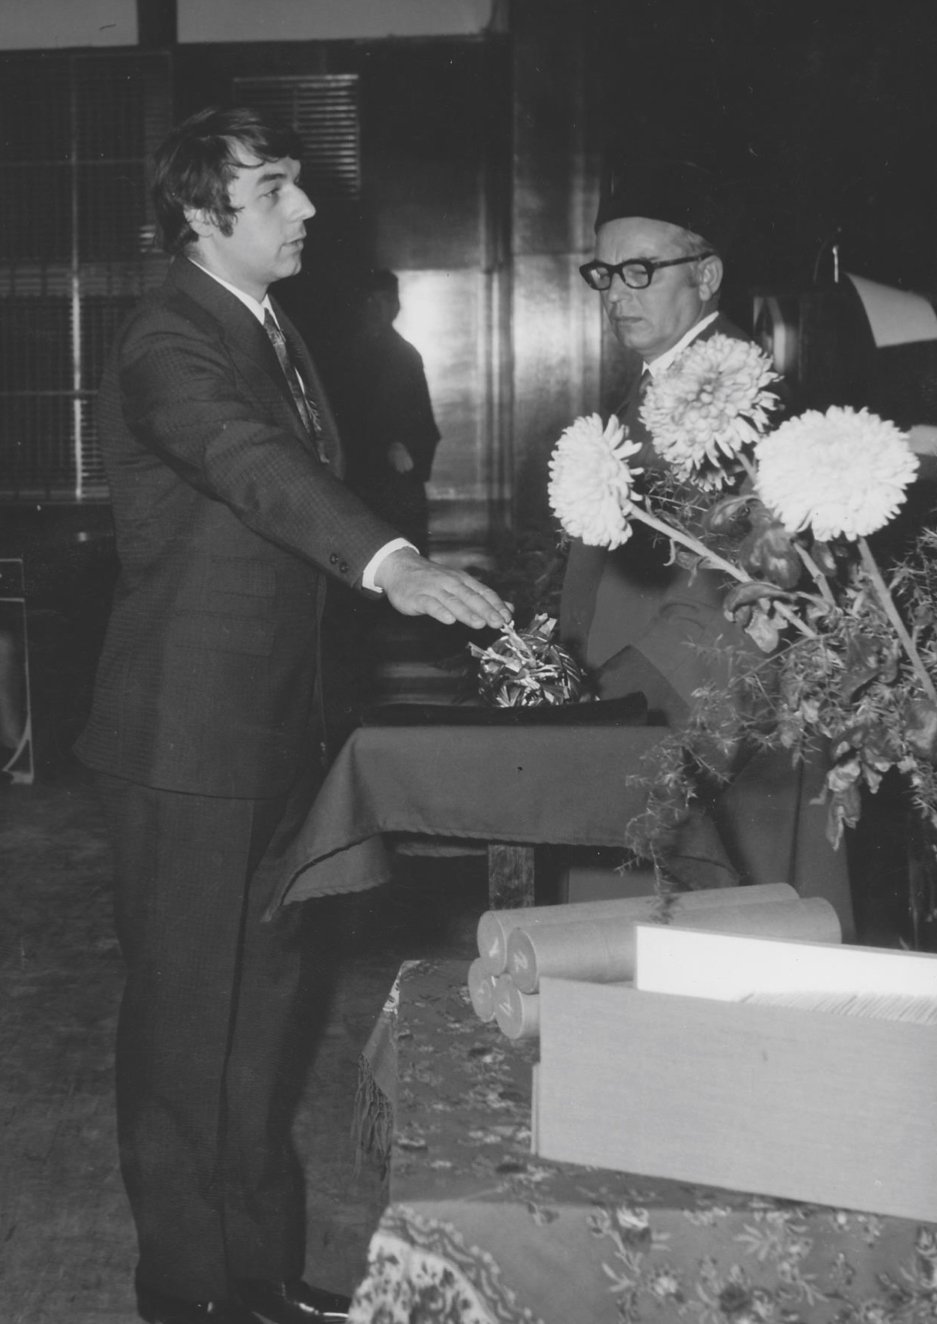 Pavel Jajtner swearing an oath as an electrical engineer graduate, Brno, October 1972